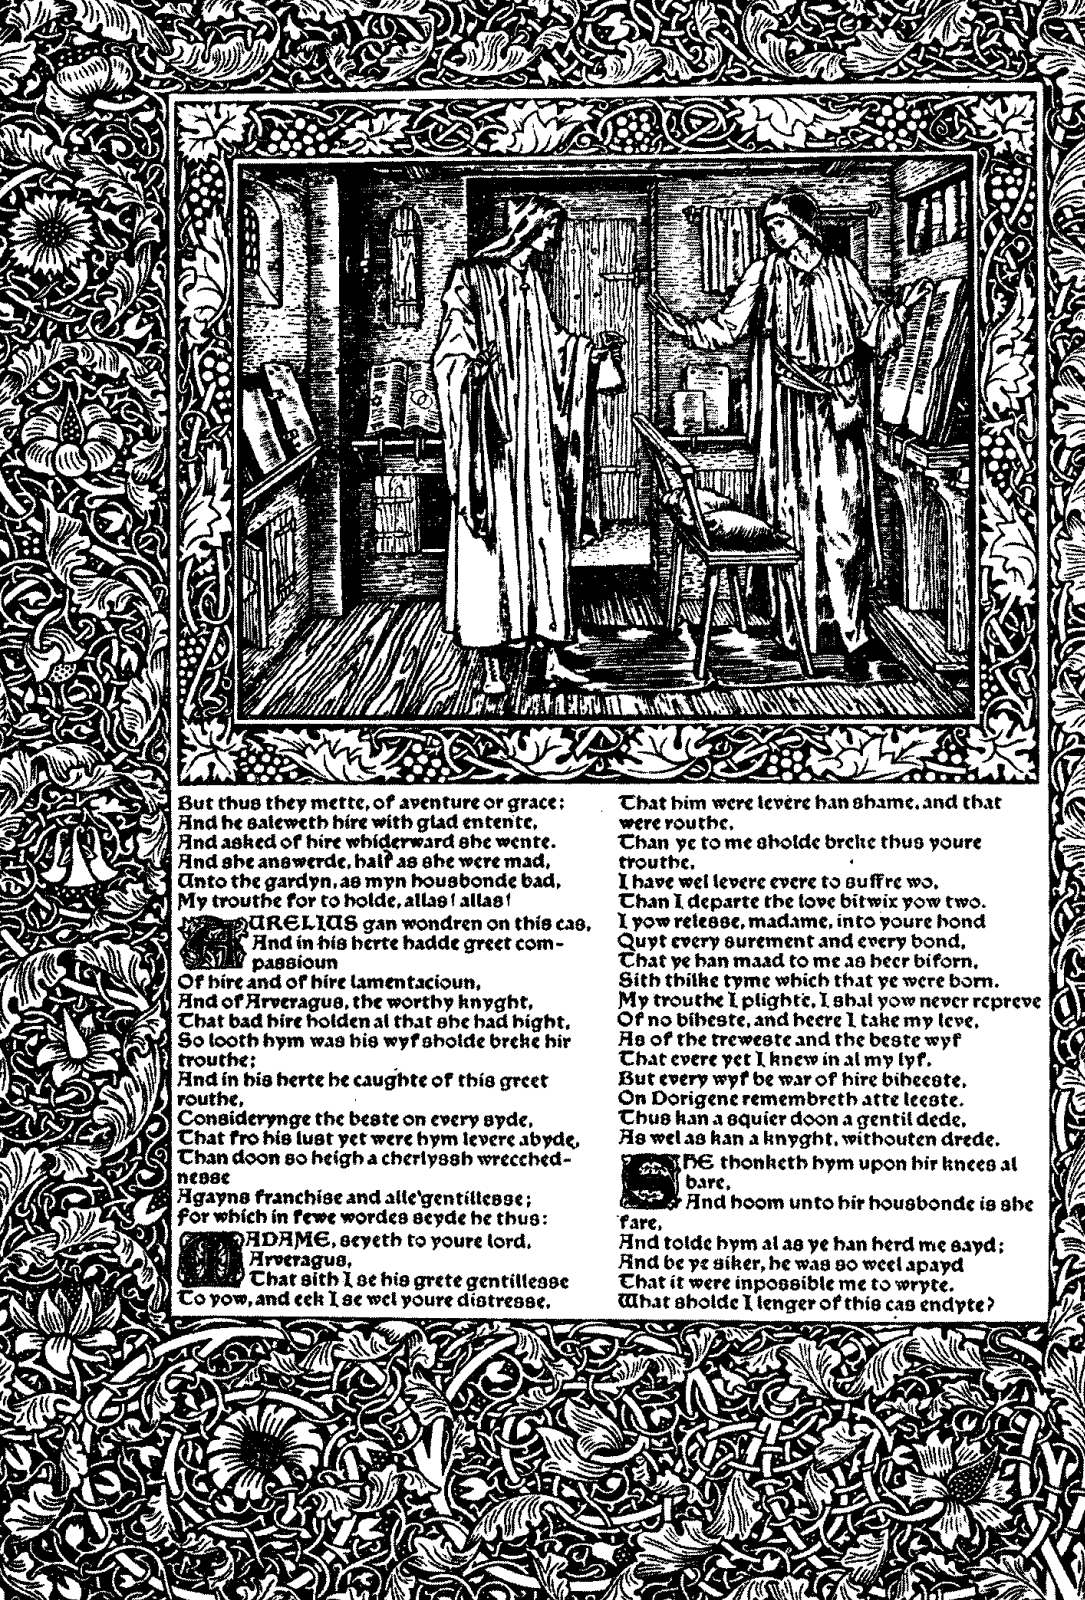 William Morris.  Presse Kelmskott.  Le design de la collection de Geoffrey Chaucer